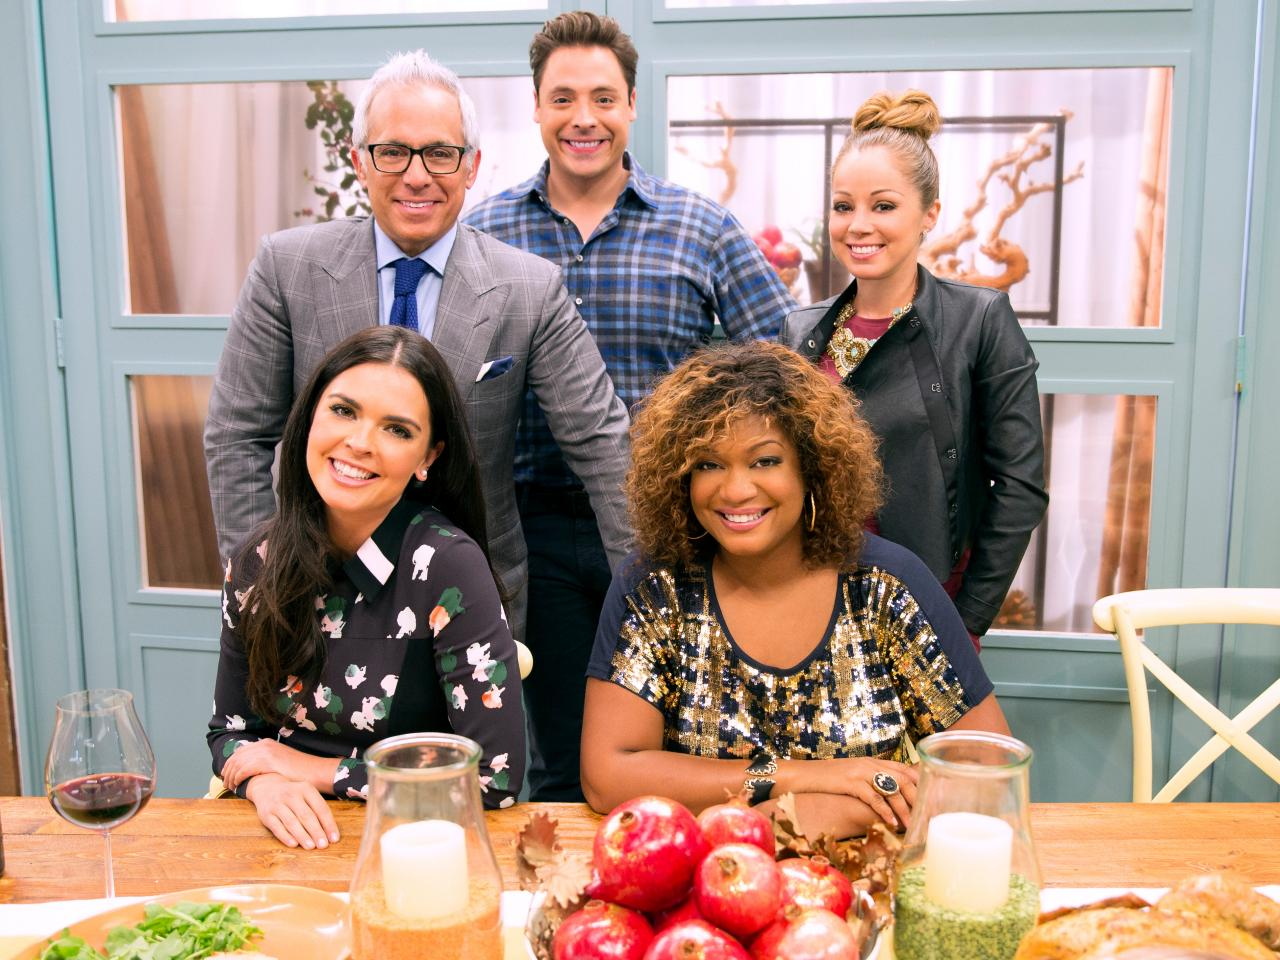 The Kitchen Season  Episode  Recipes